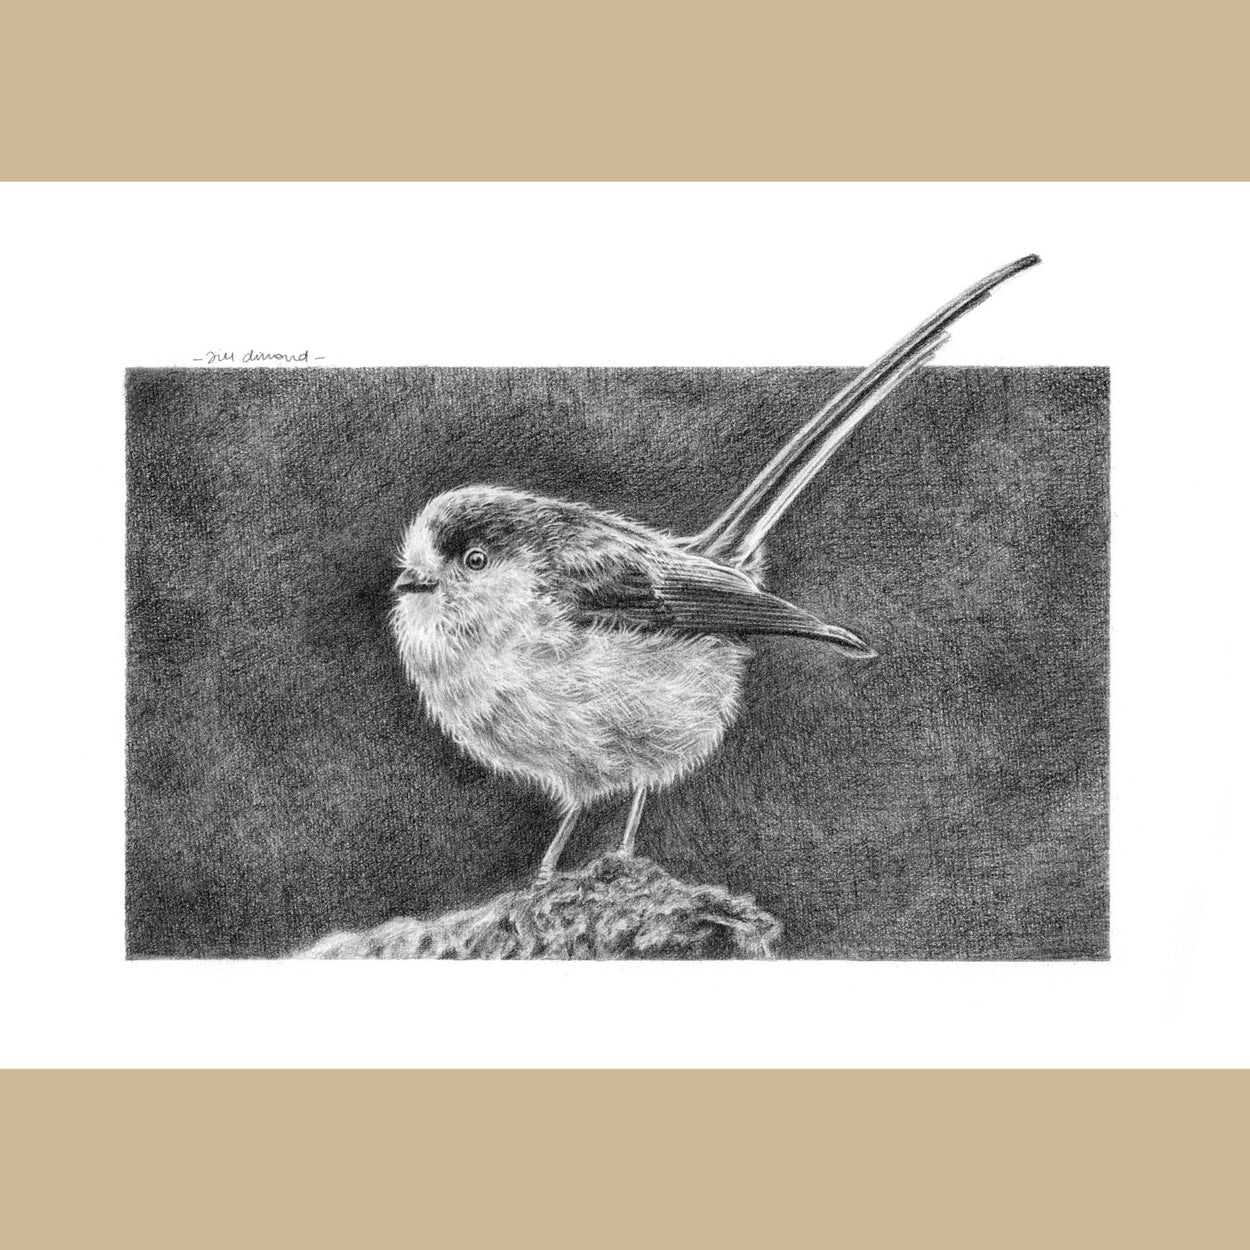 Long-Tailed Tit Bird Drawing - The Thriving Wild - Jill Dimond